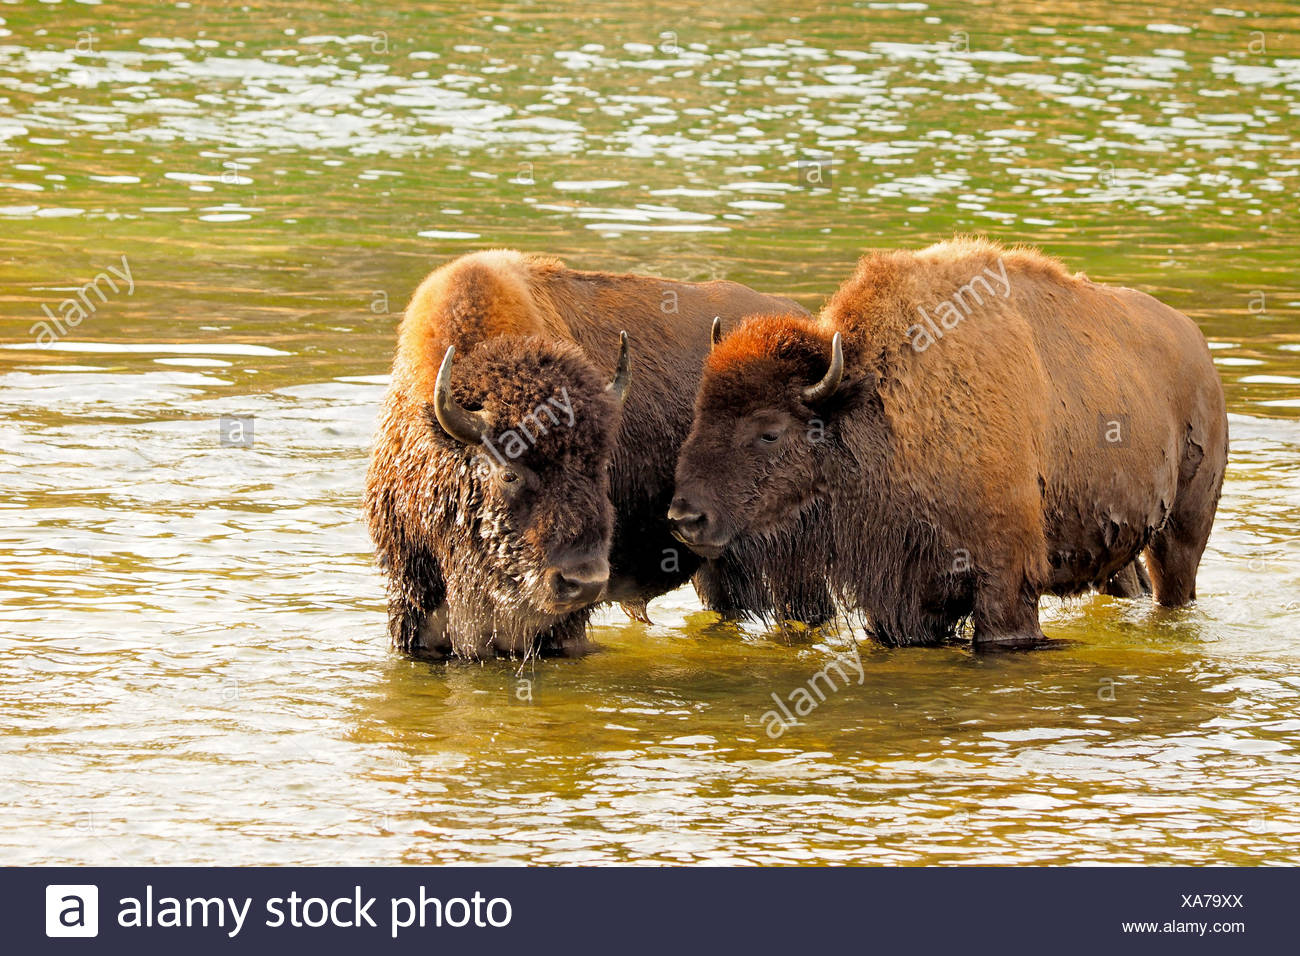 American bison, buffalo (Bison bison), buffalos crossing Yellowstone River, USA, Wyoming, Yellowstone National Park, Hayden Valley - Stock Image